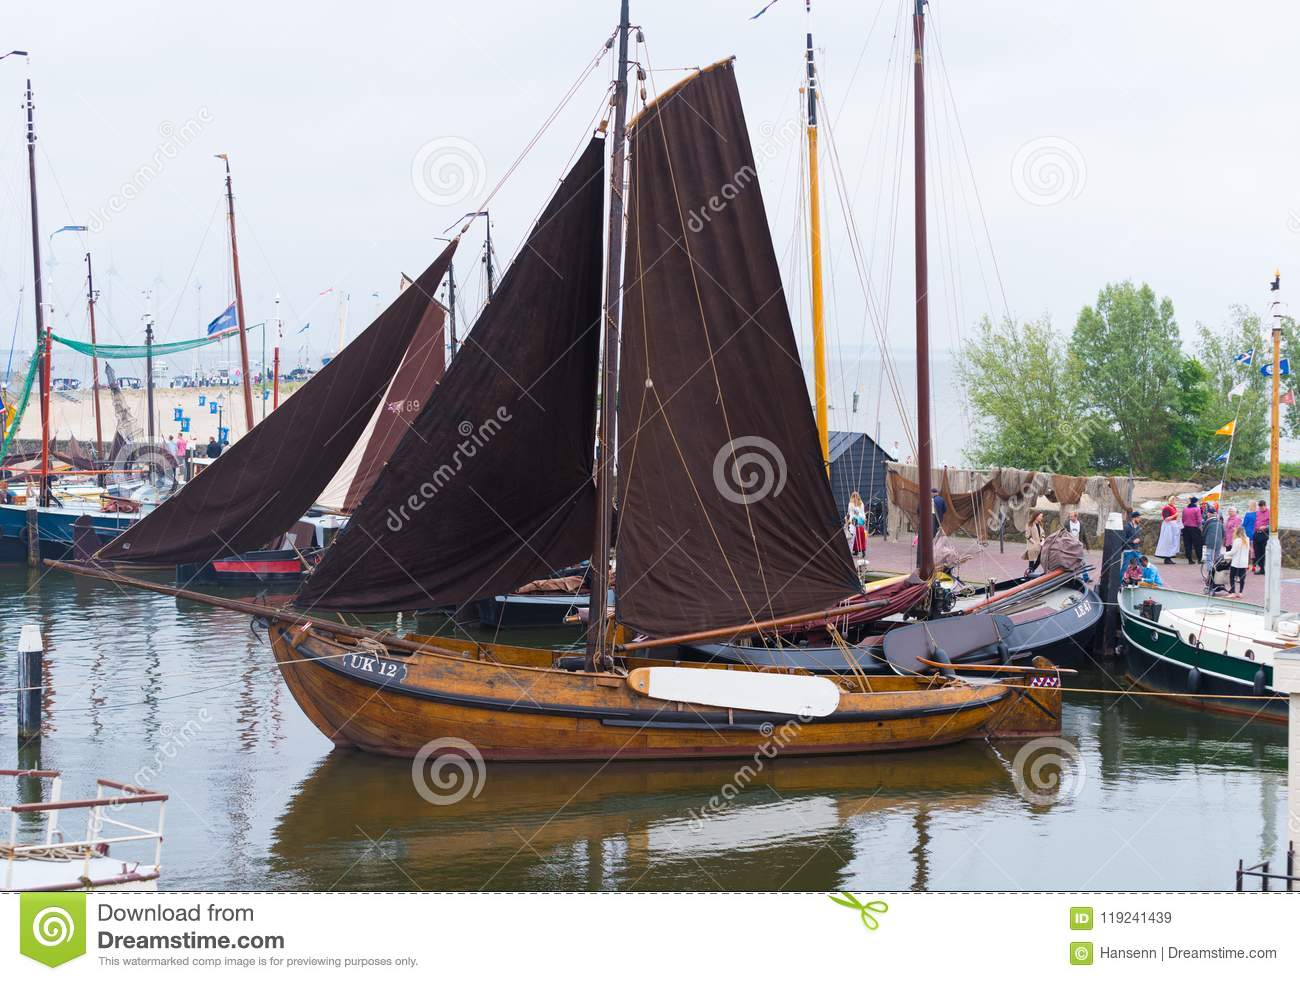 Wooden sailboat in harbor editorial stock image  Image of boat